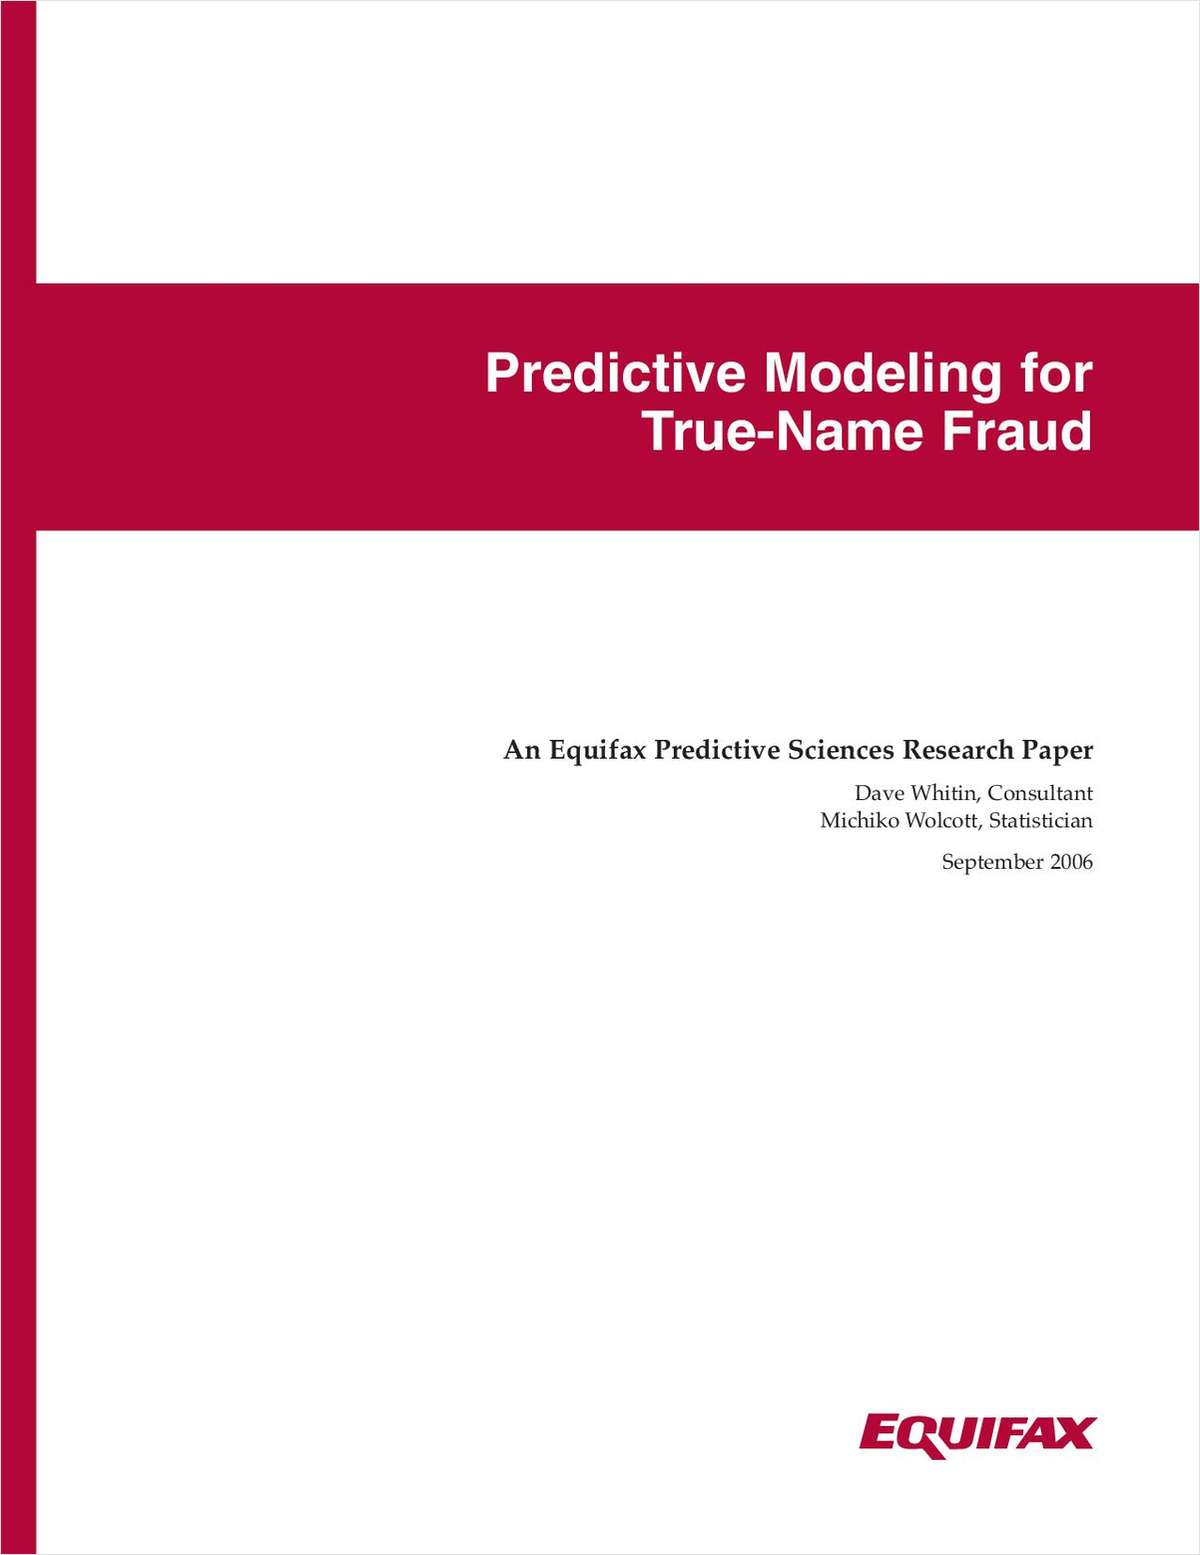 Predictive Modeling for True-Name Fraud